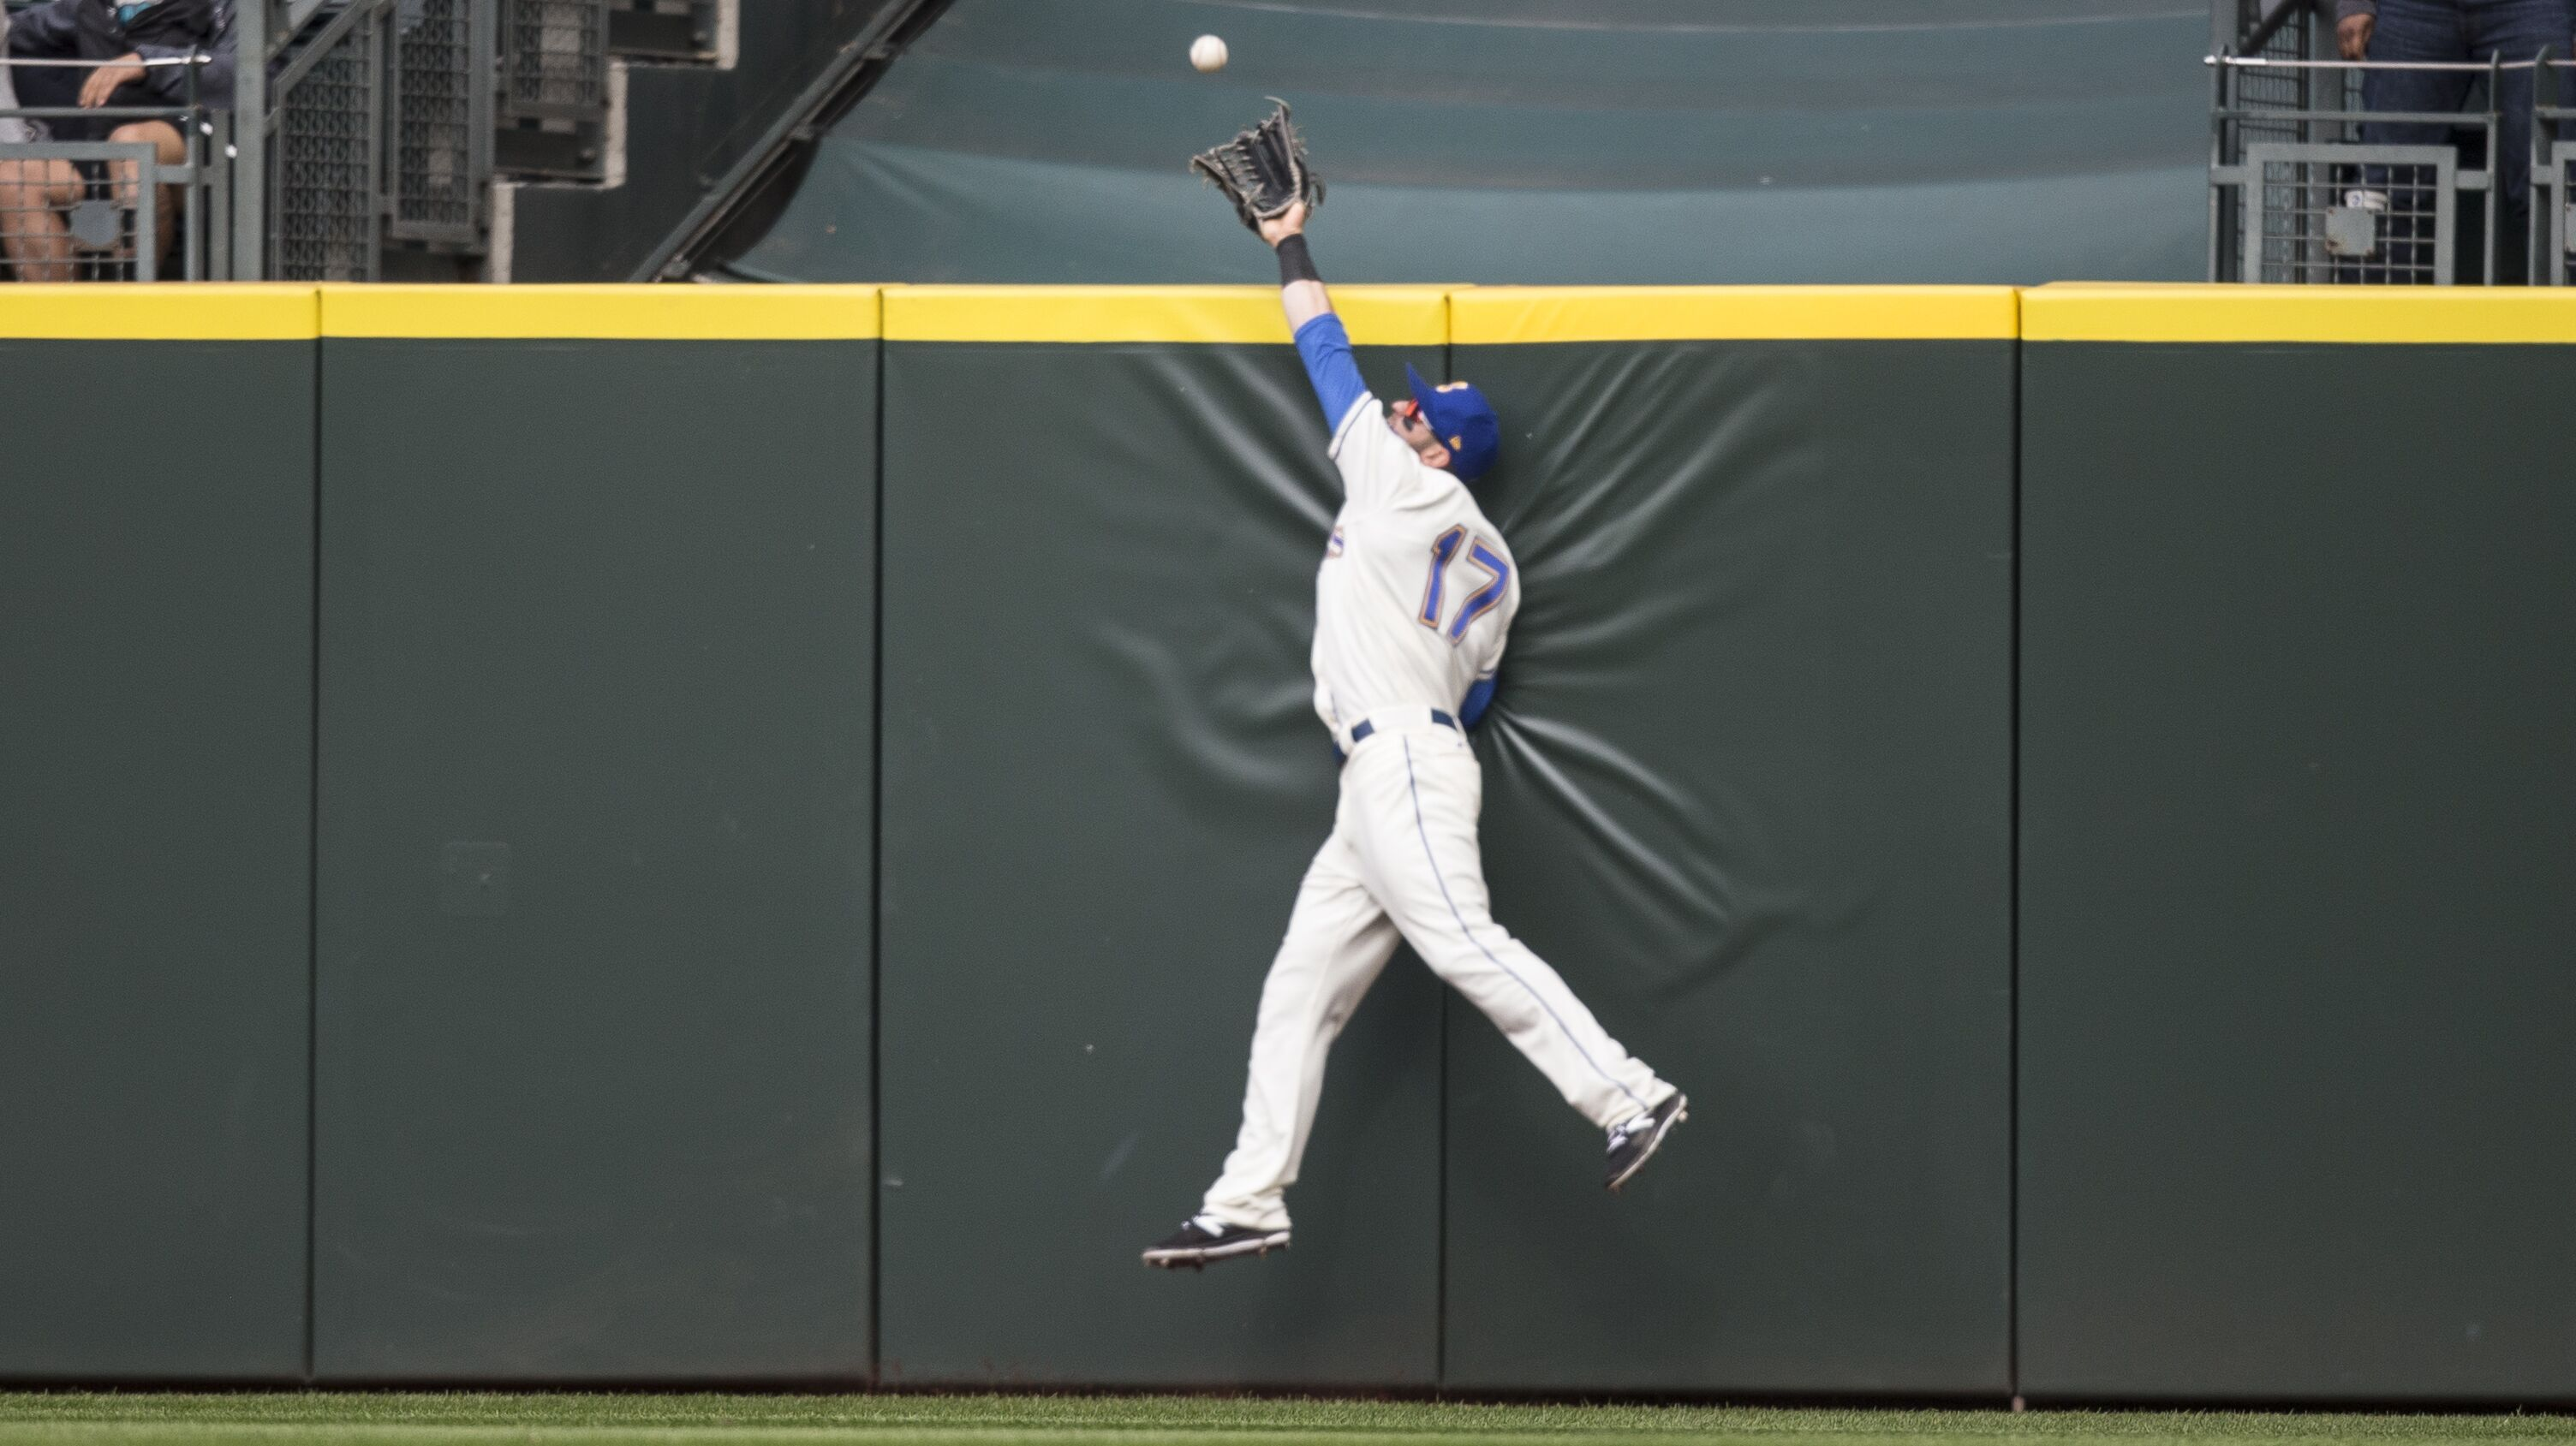 Mariners Center Fielders Might Have a Positioning Problem